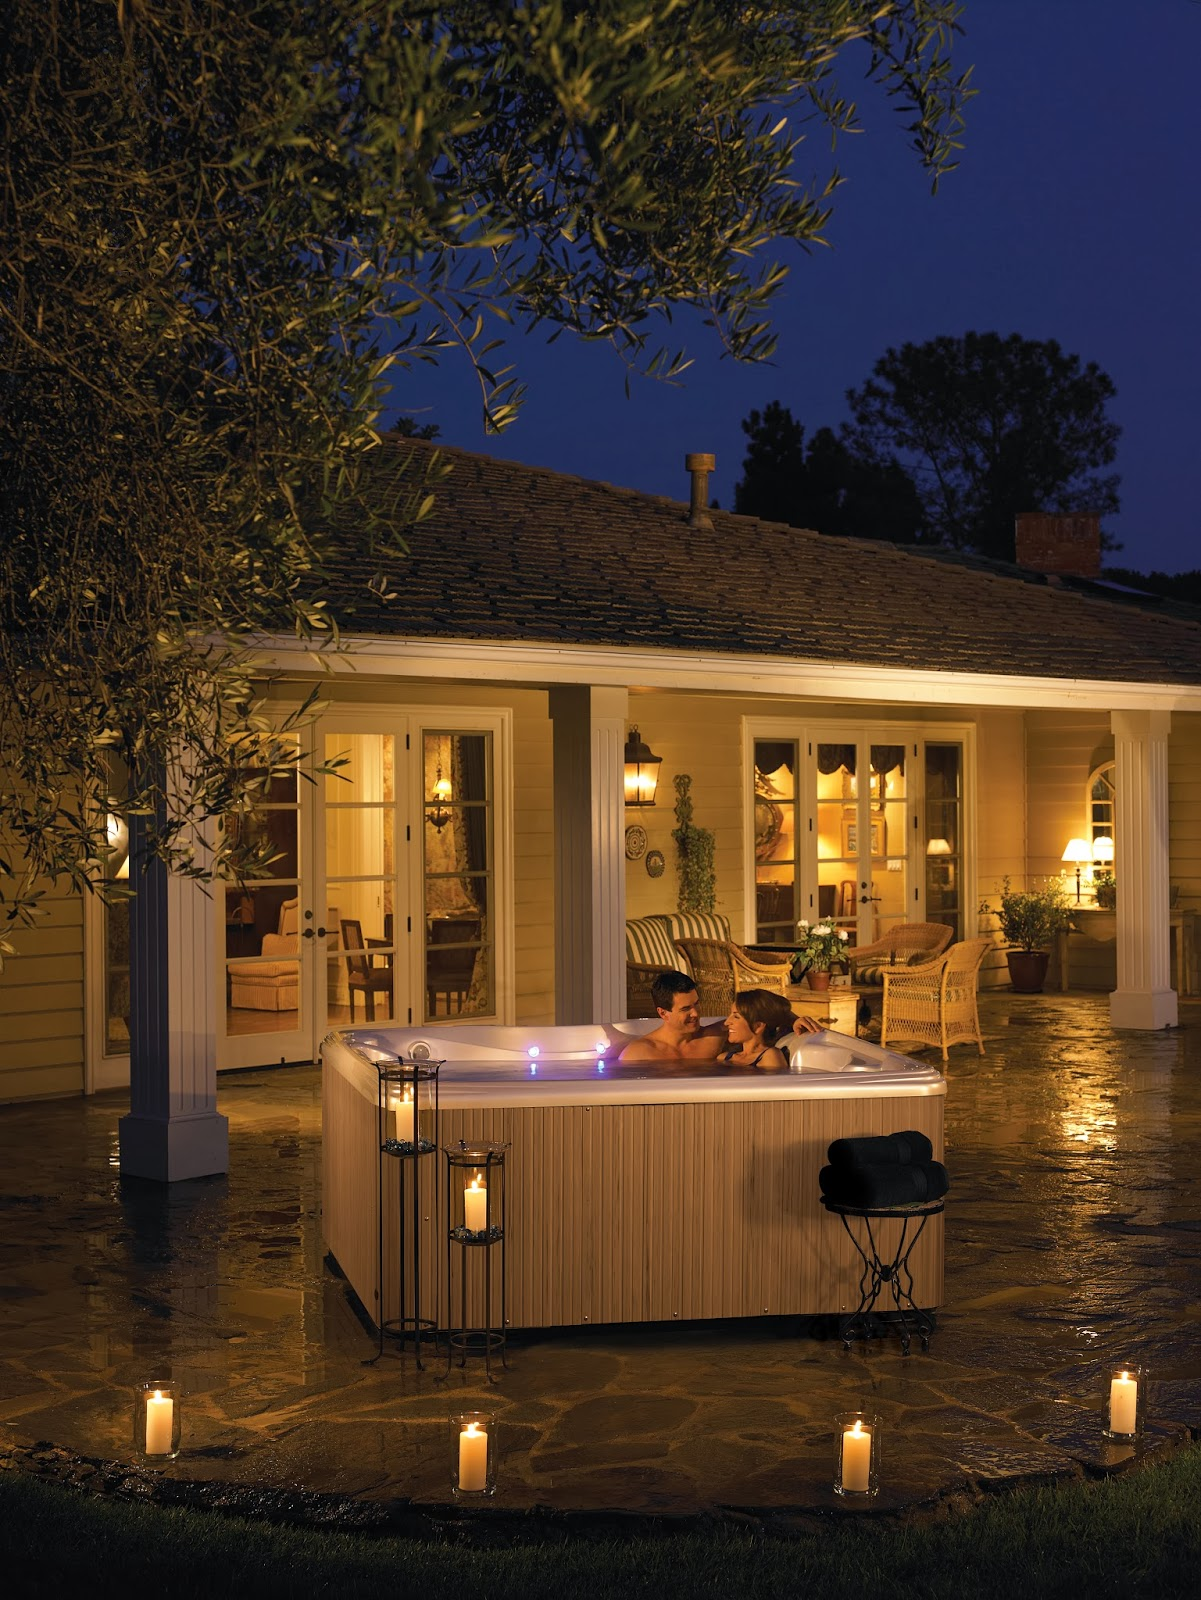 Happy Hot Tub Blog: Why a Hot Tub Could Be a Great Investment